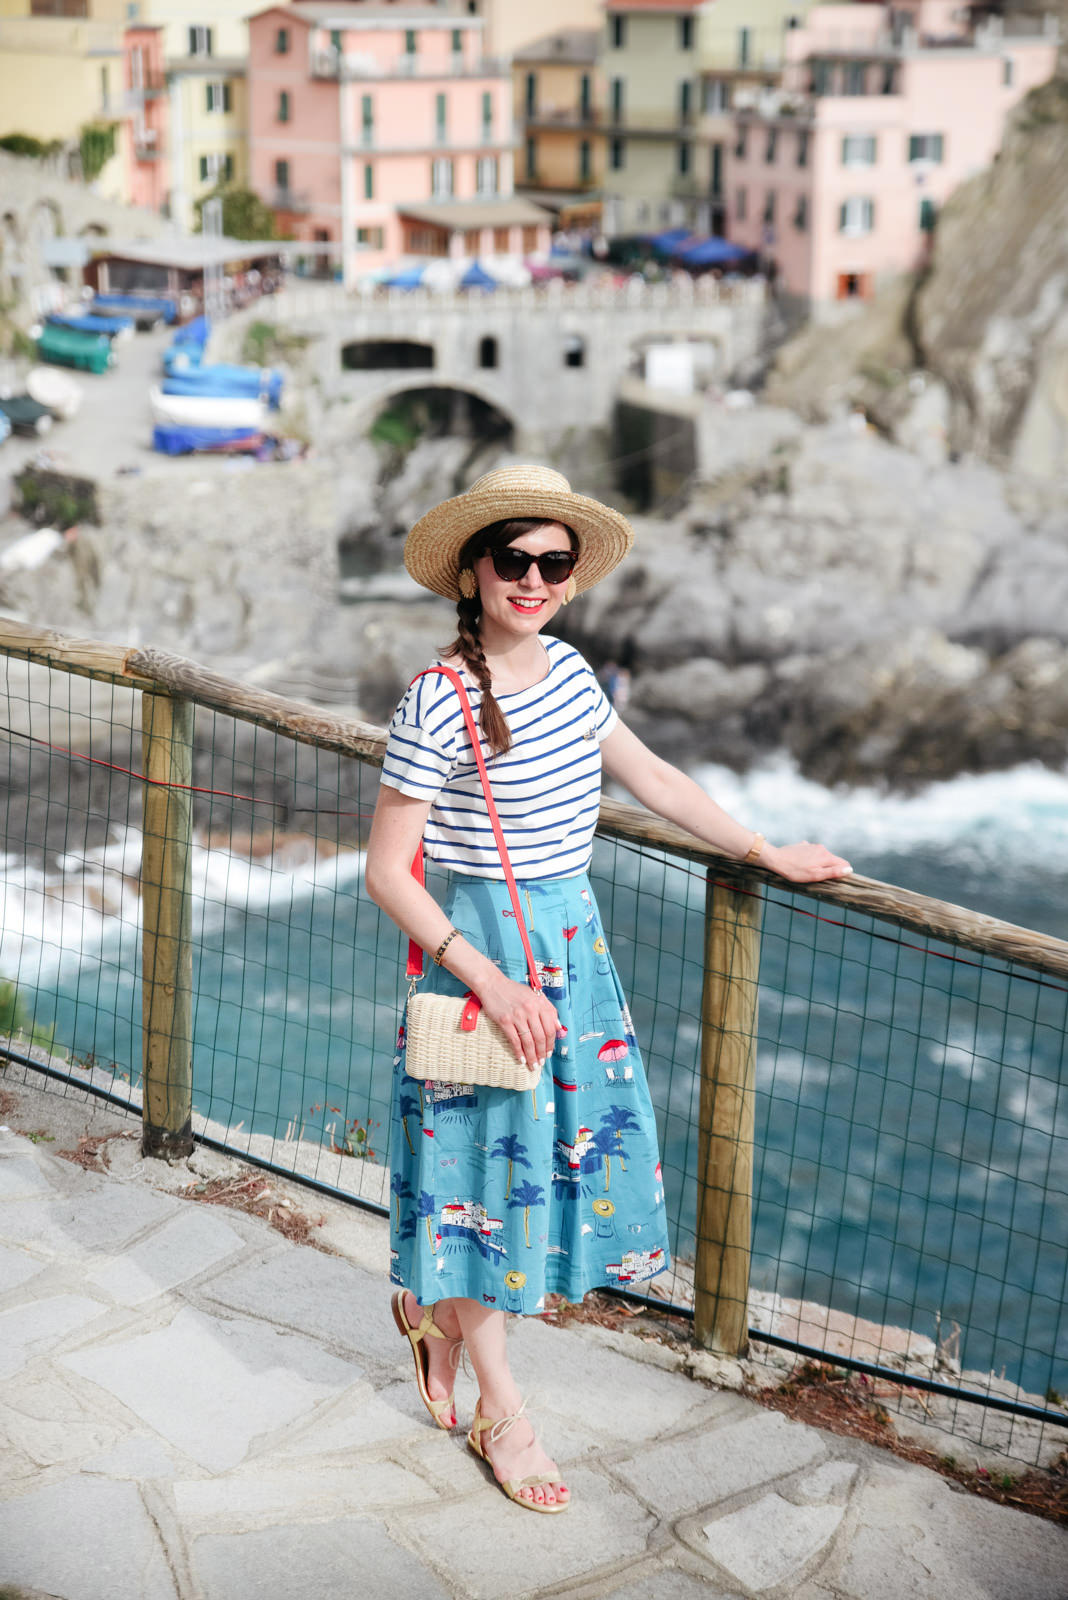 Blog-Mode-And-The-City-Lifestyle-Italie-Sestri-Levante-Cinque-Terre-18